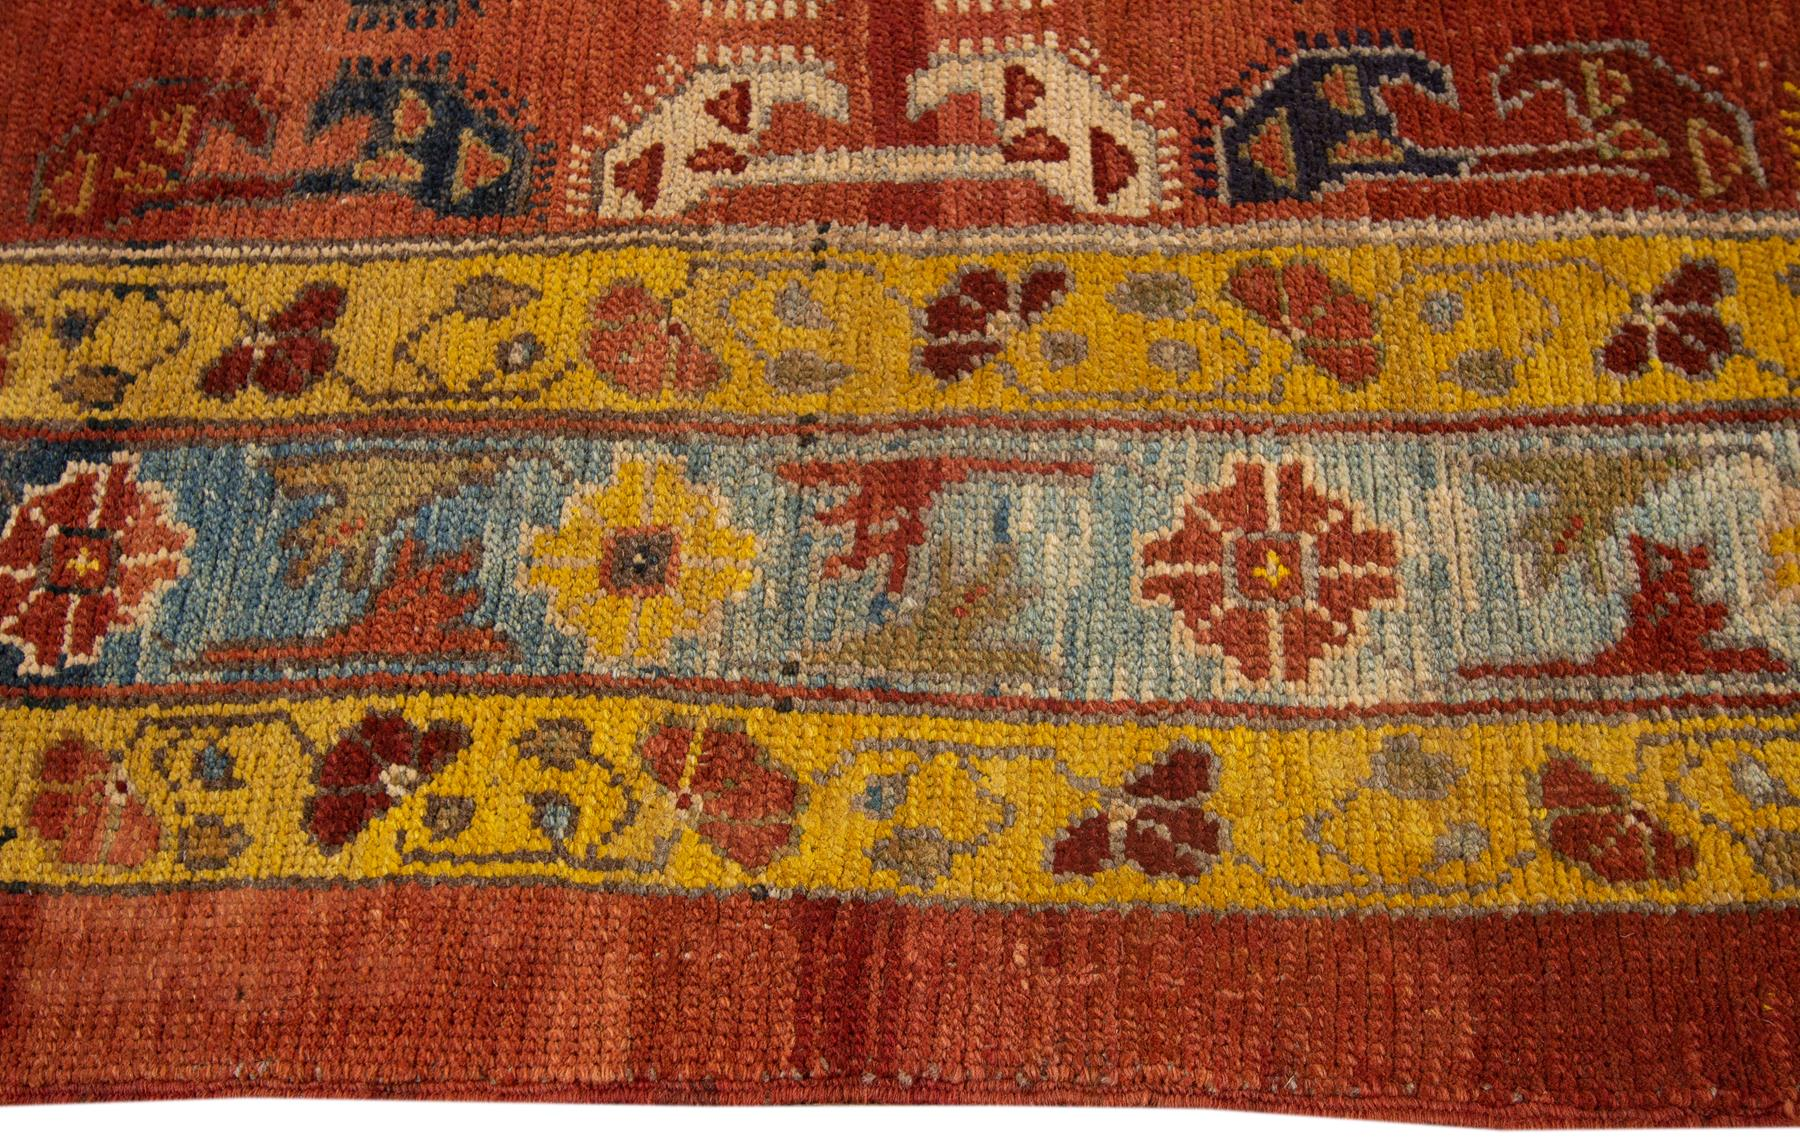 Vintage Persian Tribal Bakshaish Rug, 7X11